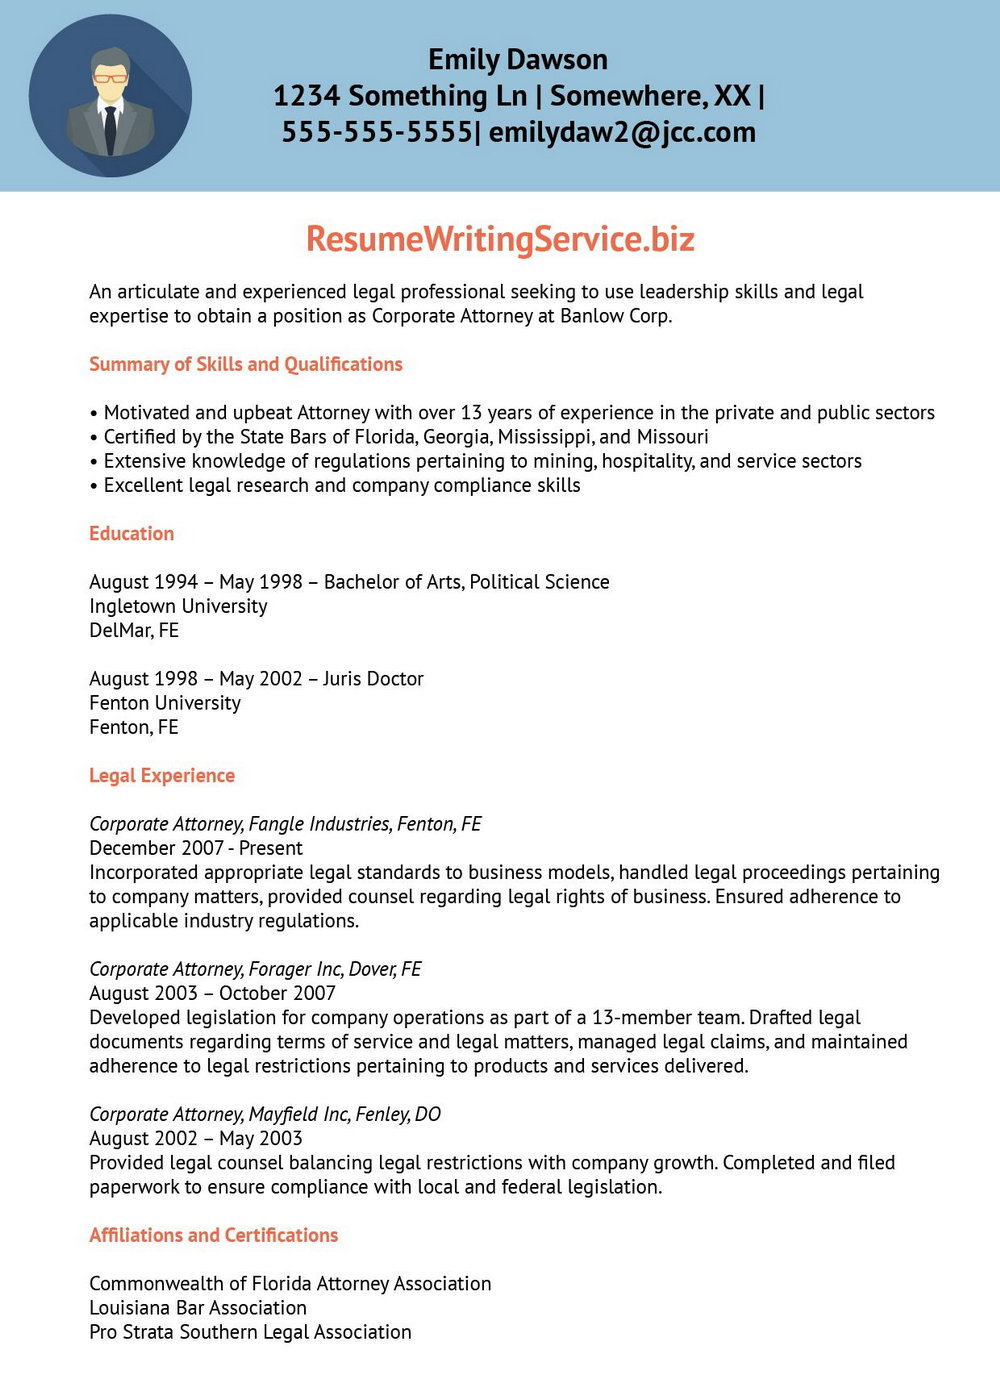 Executive Resume Writing Service Portland Or